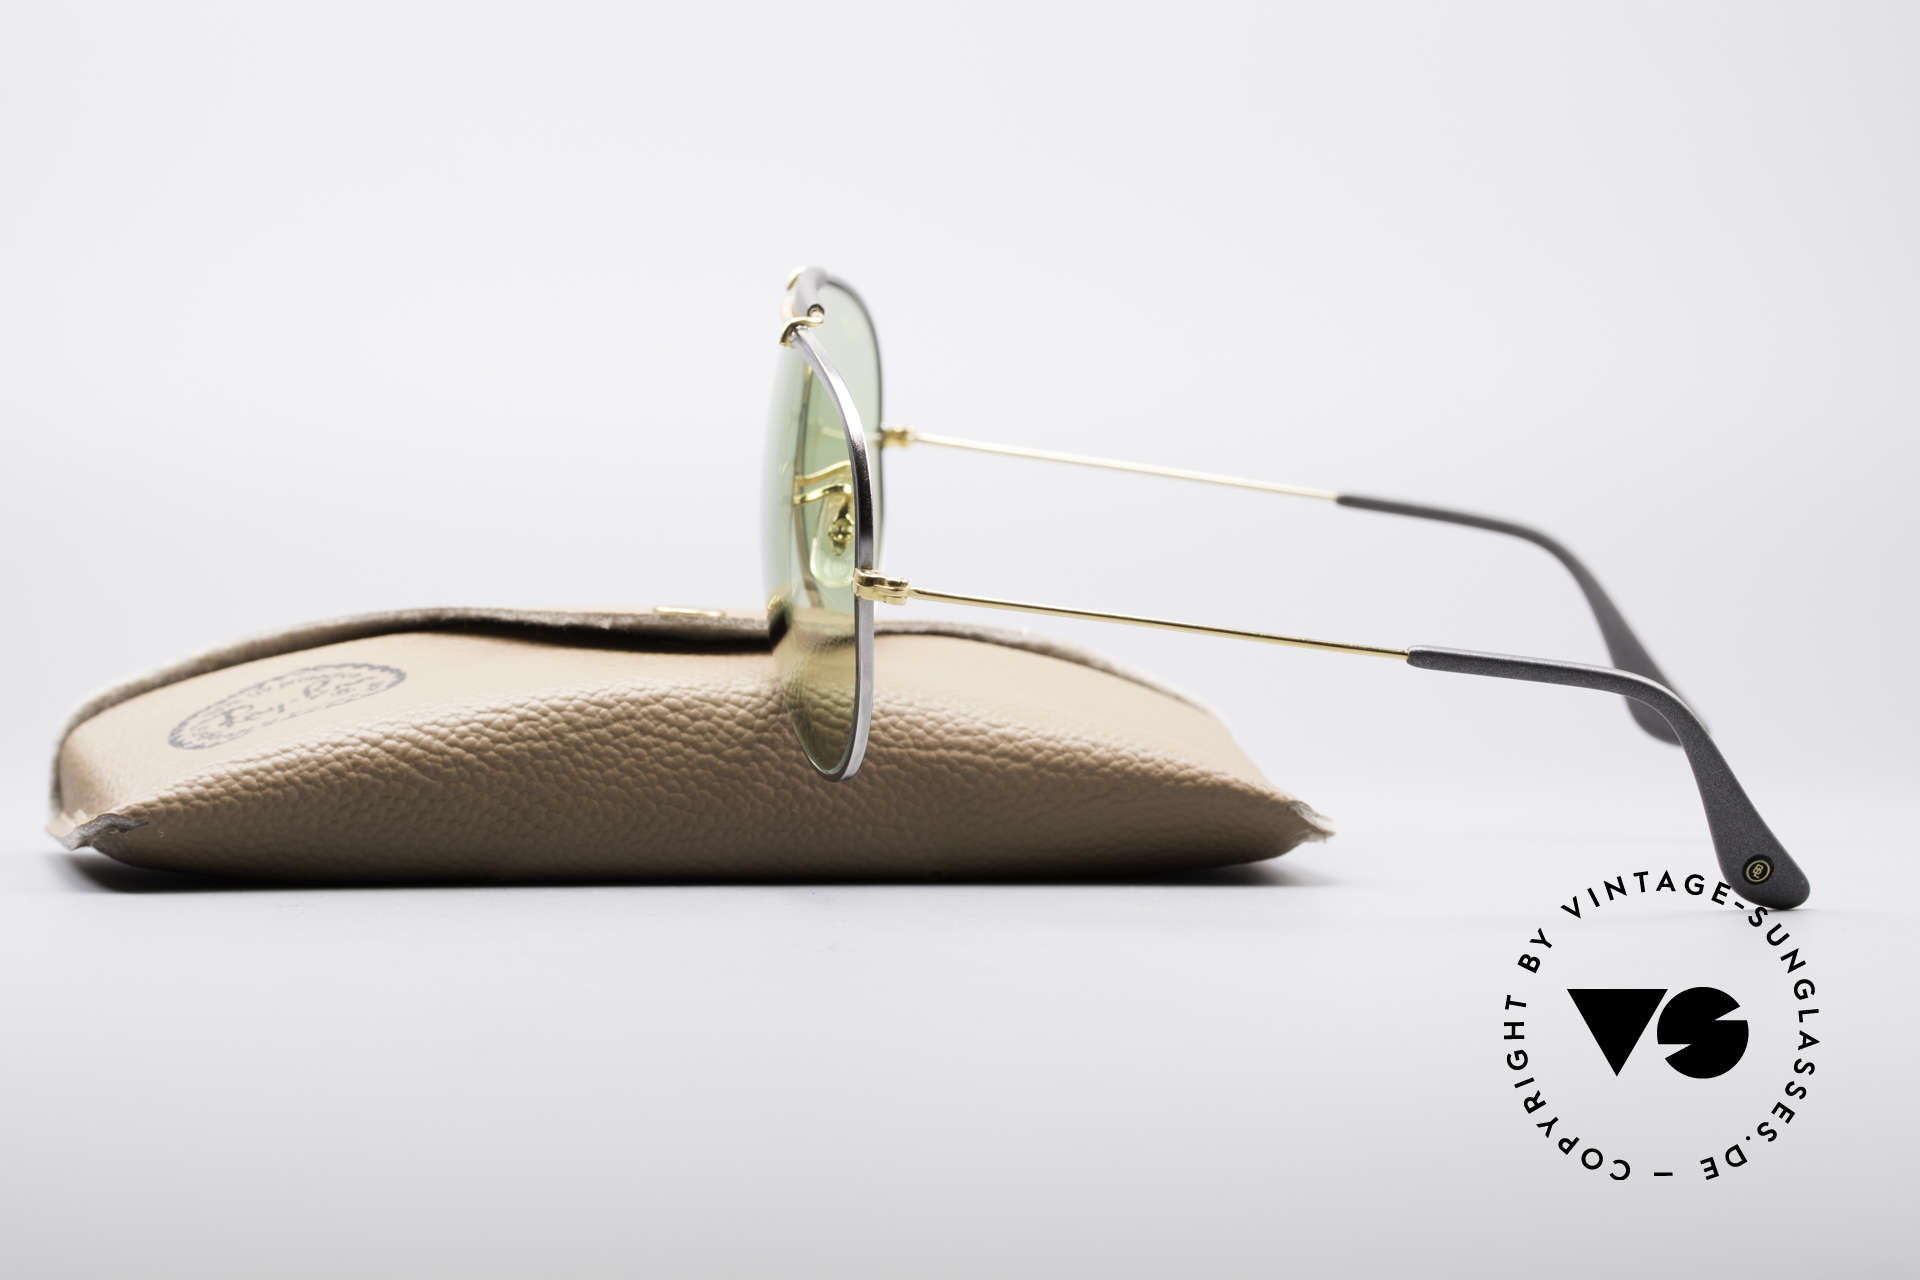 Ray Ban Outdoorsman II Precious Metals Changeable, NO retro frame; an old original with serial number, Made for Men